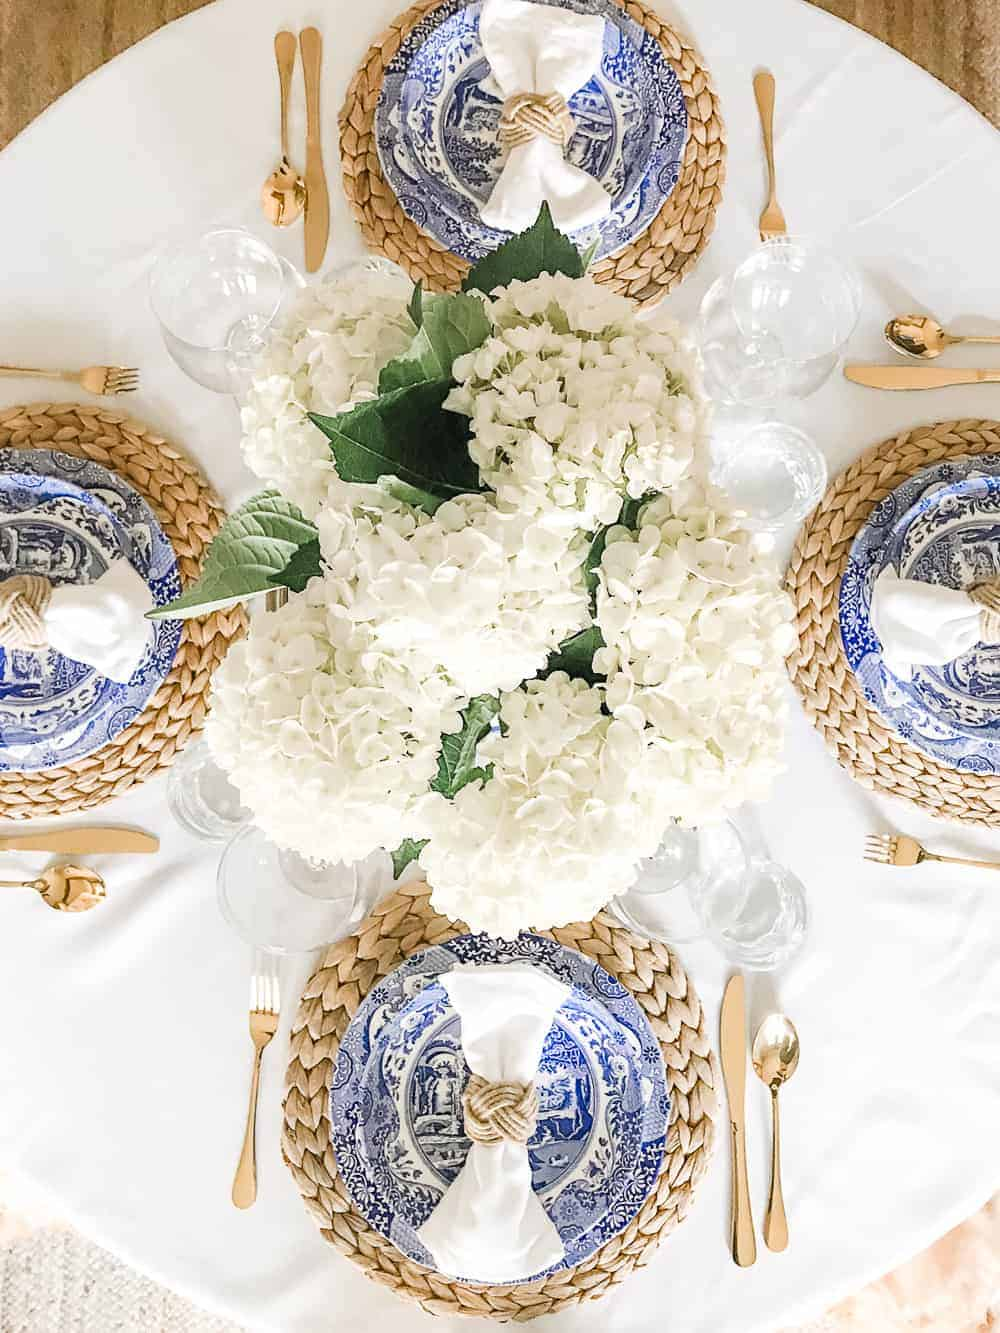 10 Charming Table Settings for Your Next Party! - Sugar and Charm